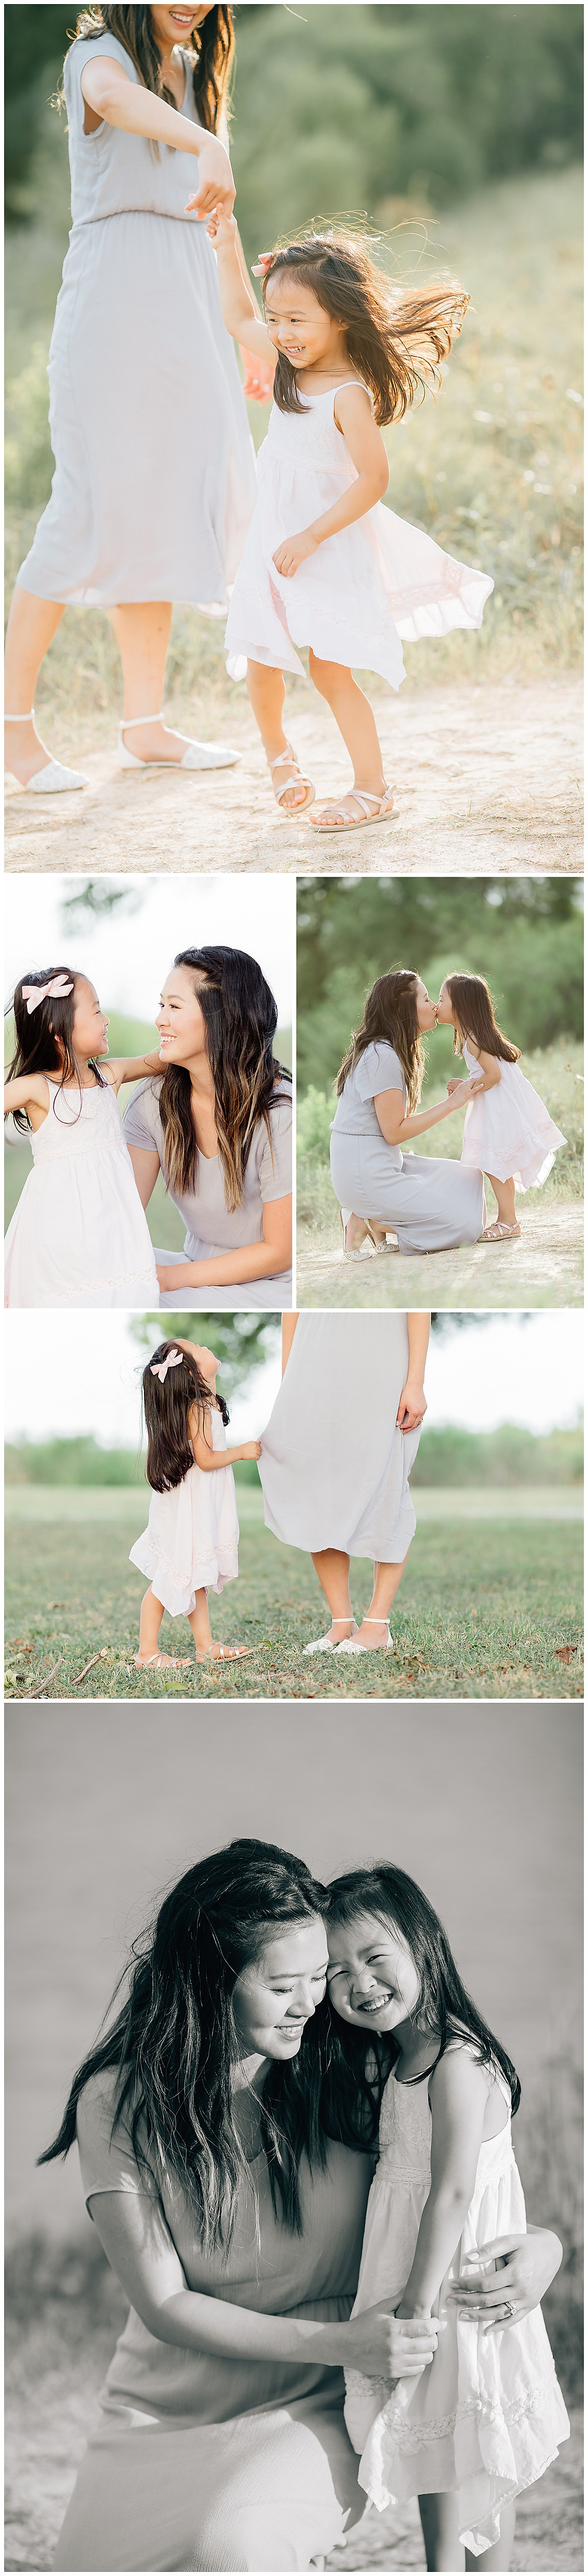 beautiful mommy and me photo ideas